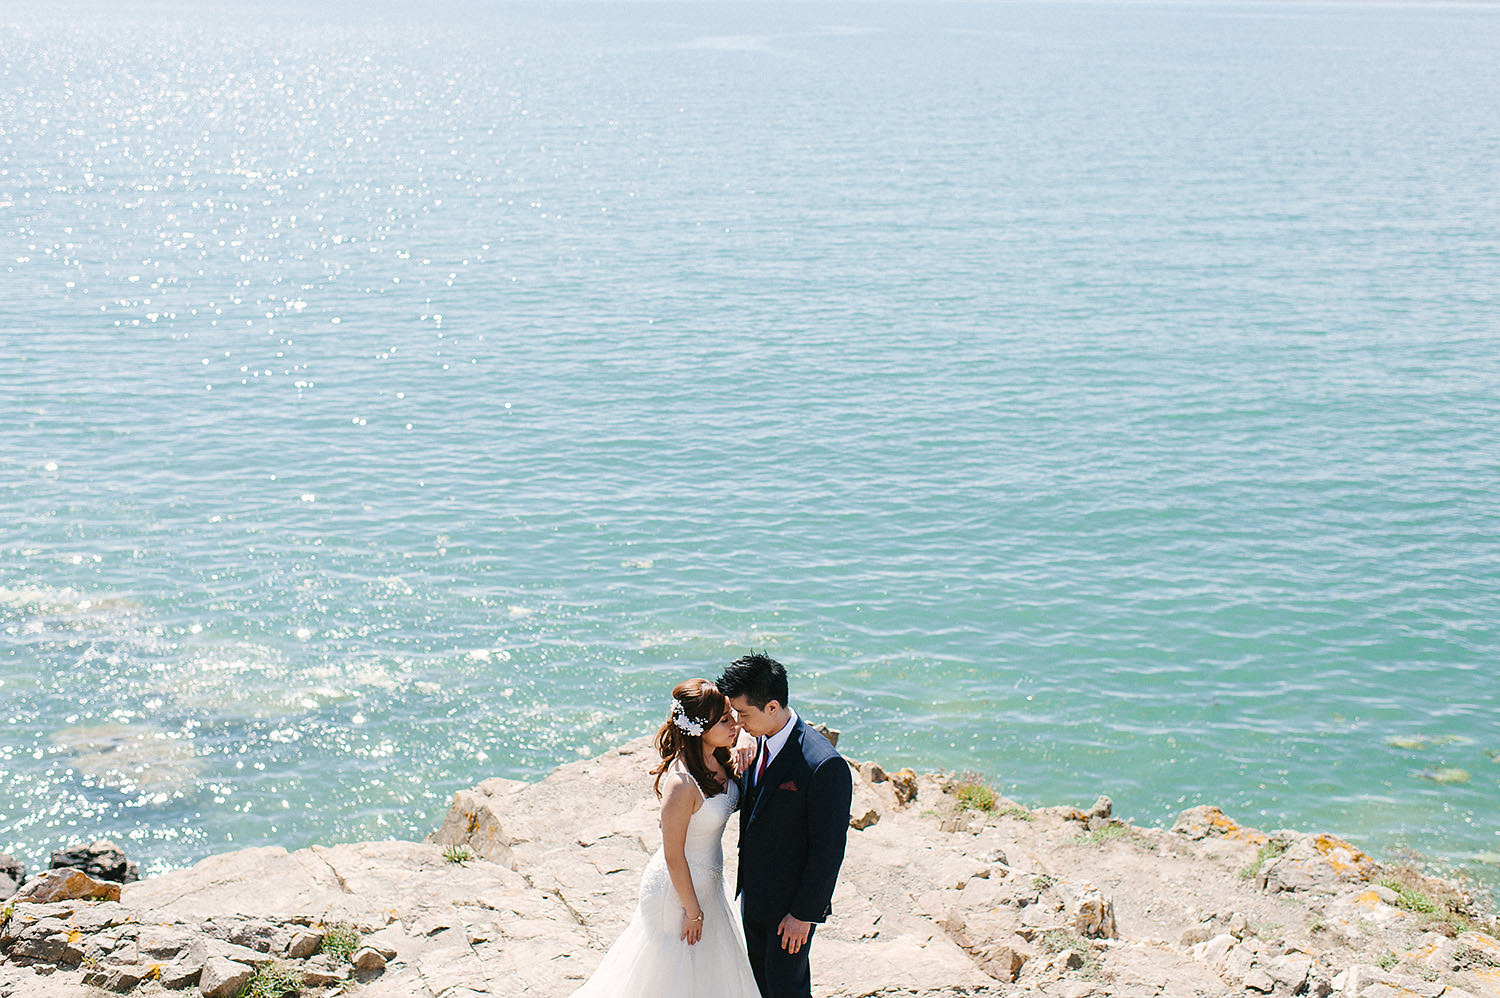 006+Howth+Wedding+Photo.jpg